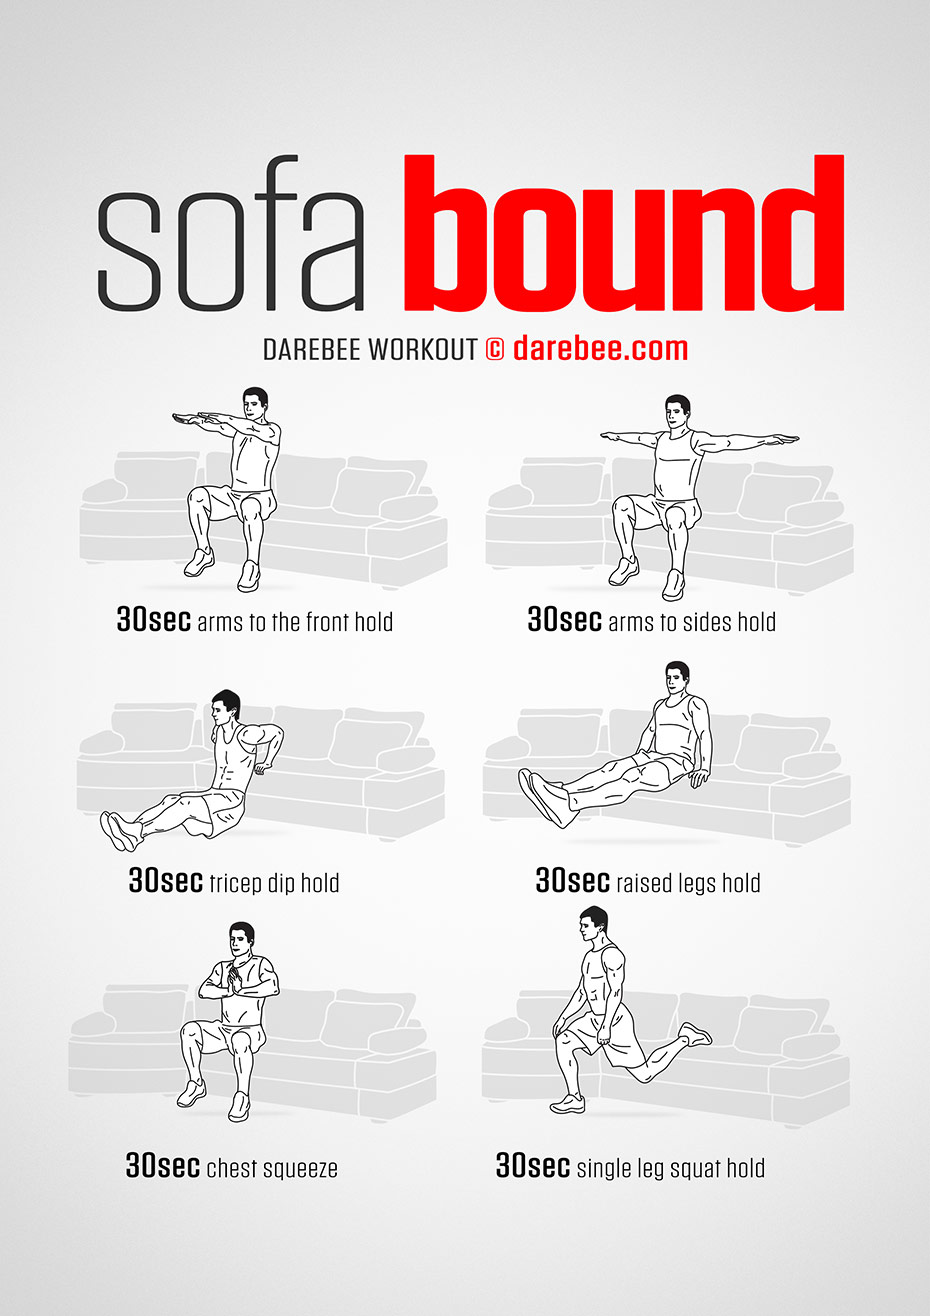 Sofa Bound Workout